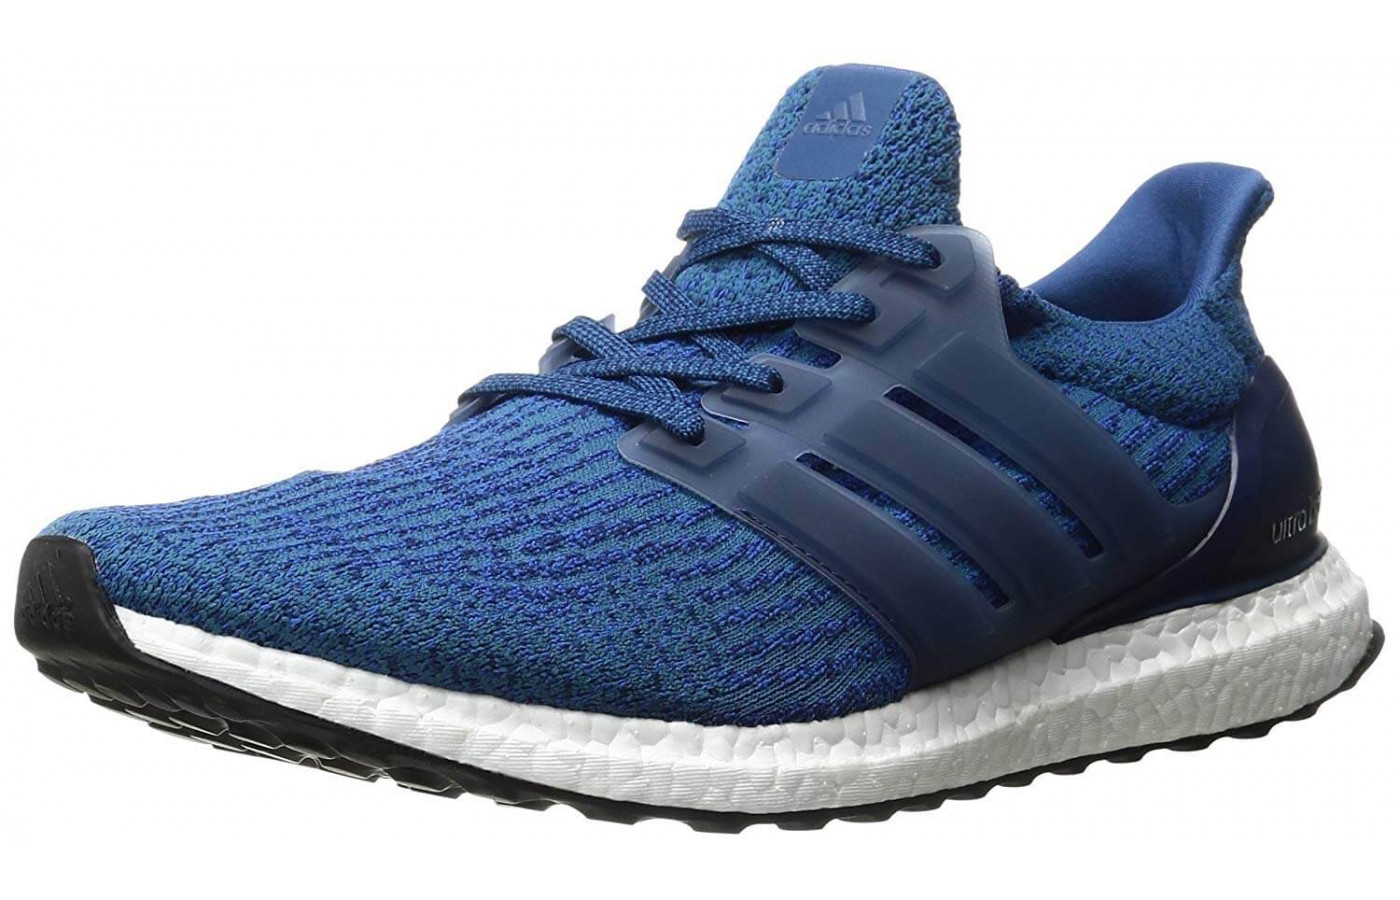 Details about adidas Ultra Boost Parley ST Mens Running Shoes Navy Structured Support Trainers